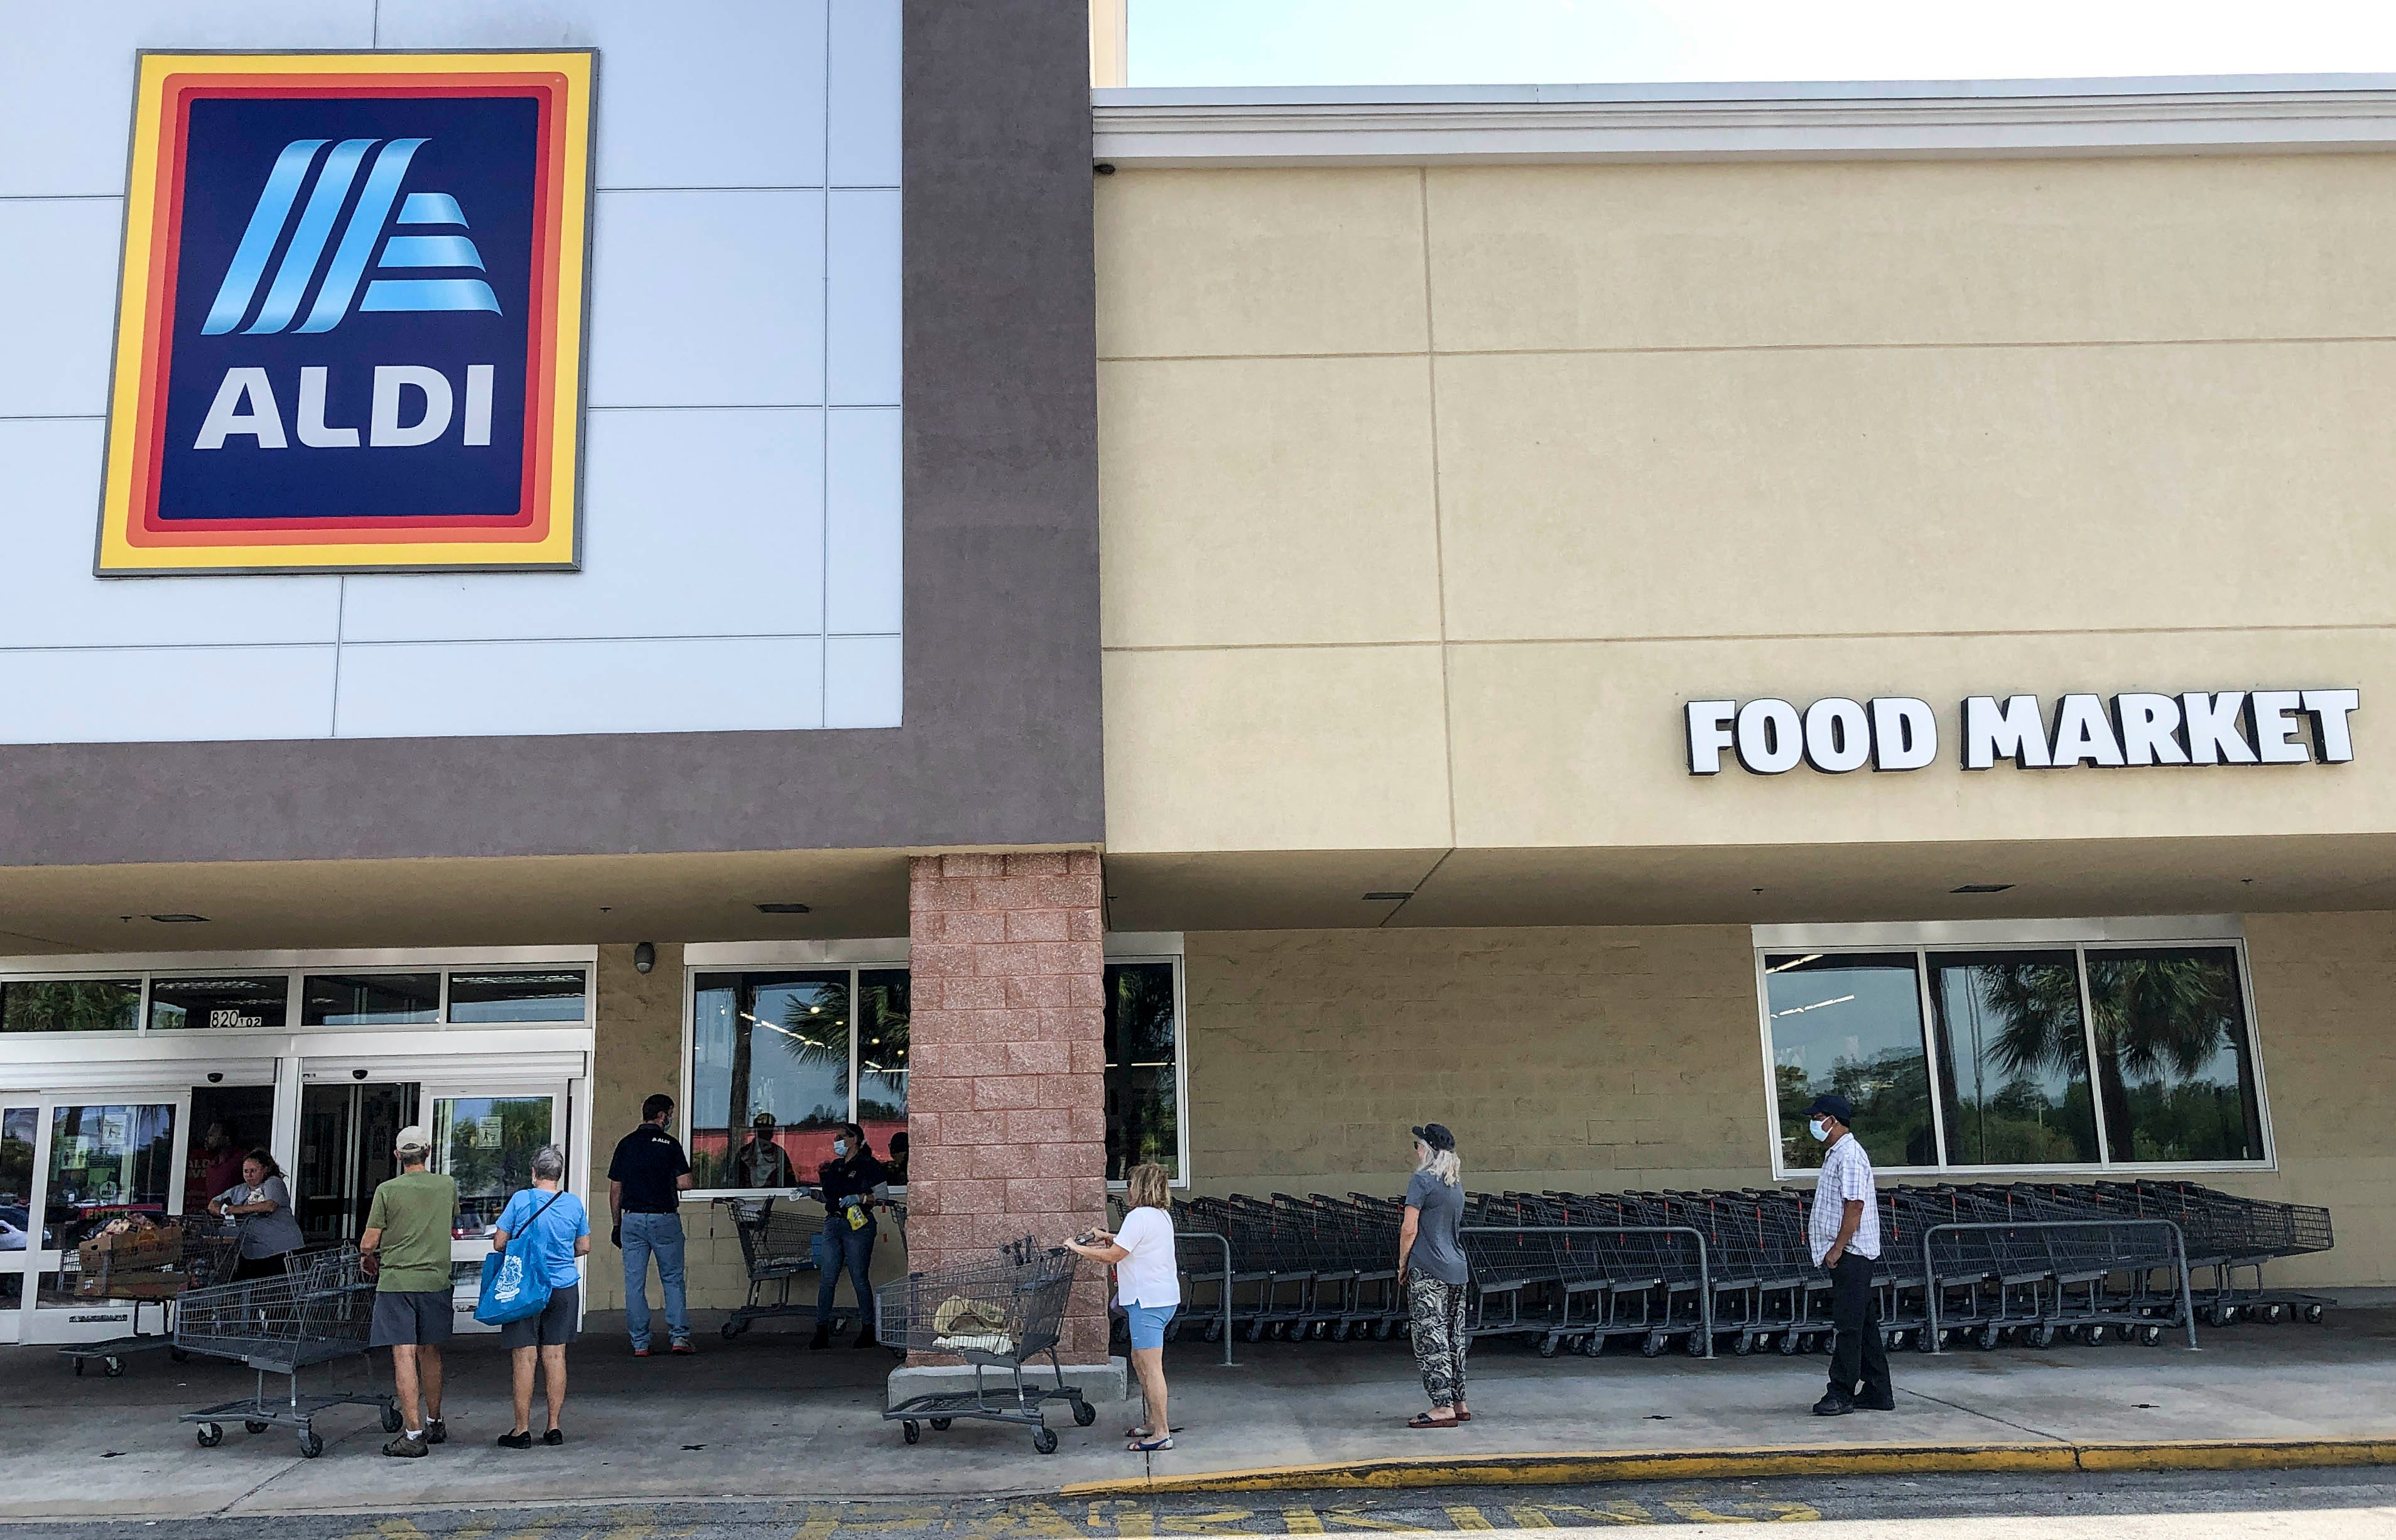 Aldi opening new stores and expanding curbside pickup with Instacart to 500 more locations in 2021